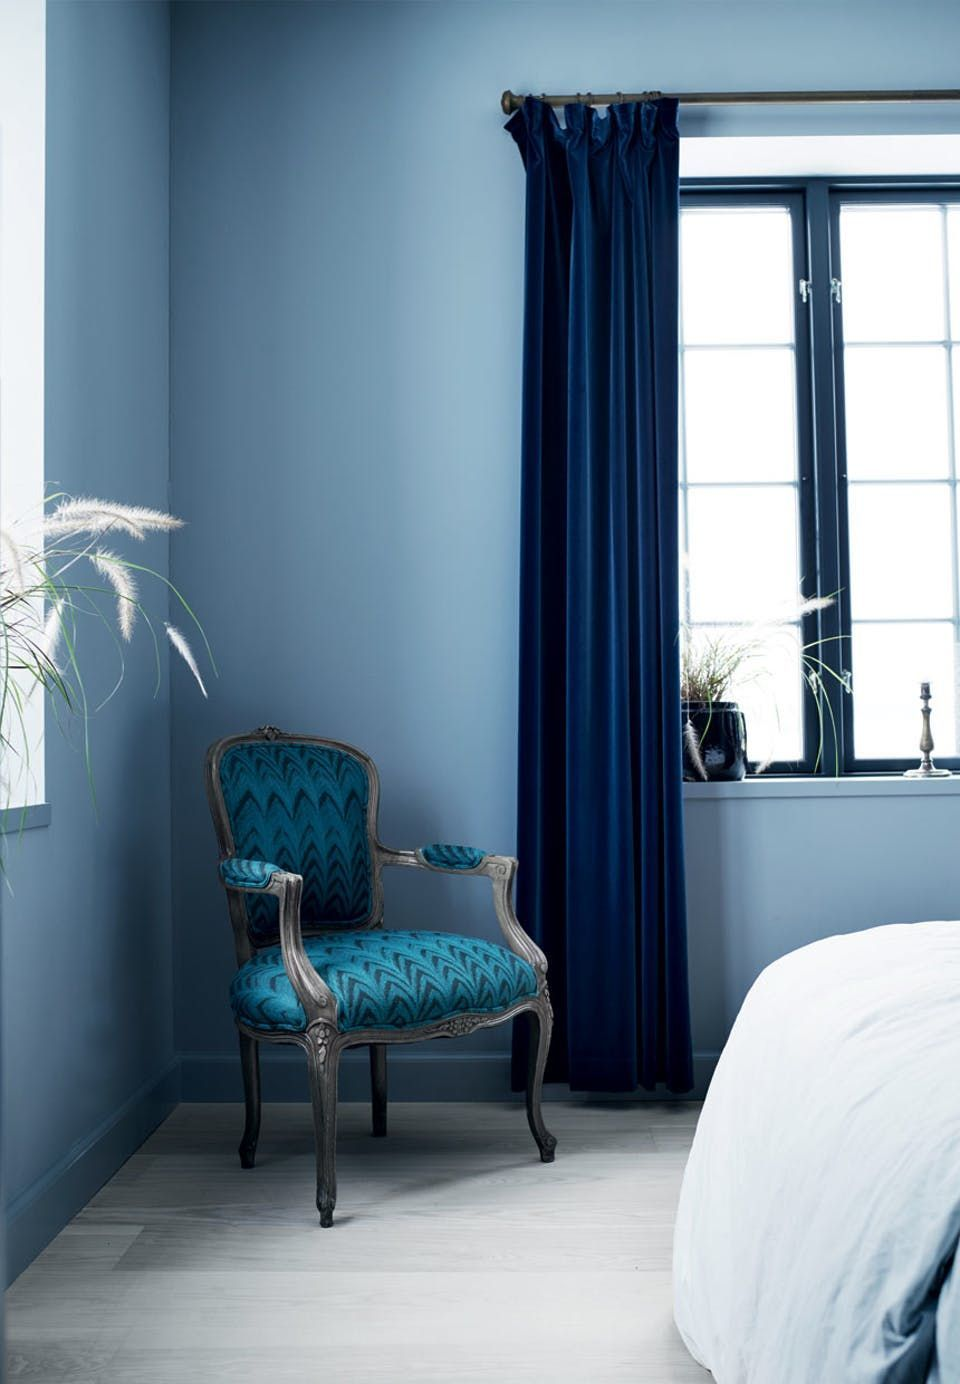 Lux blue velvet curtains